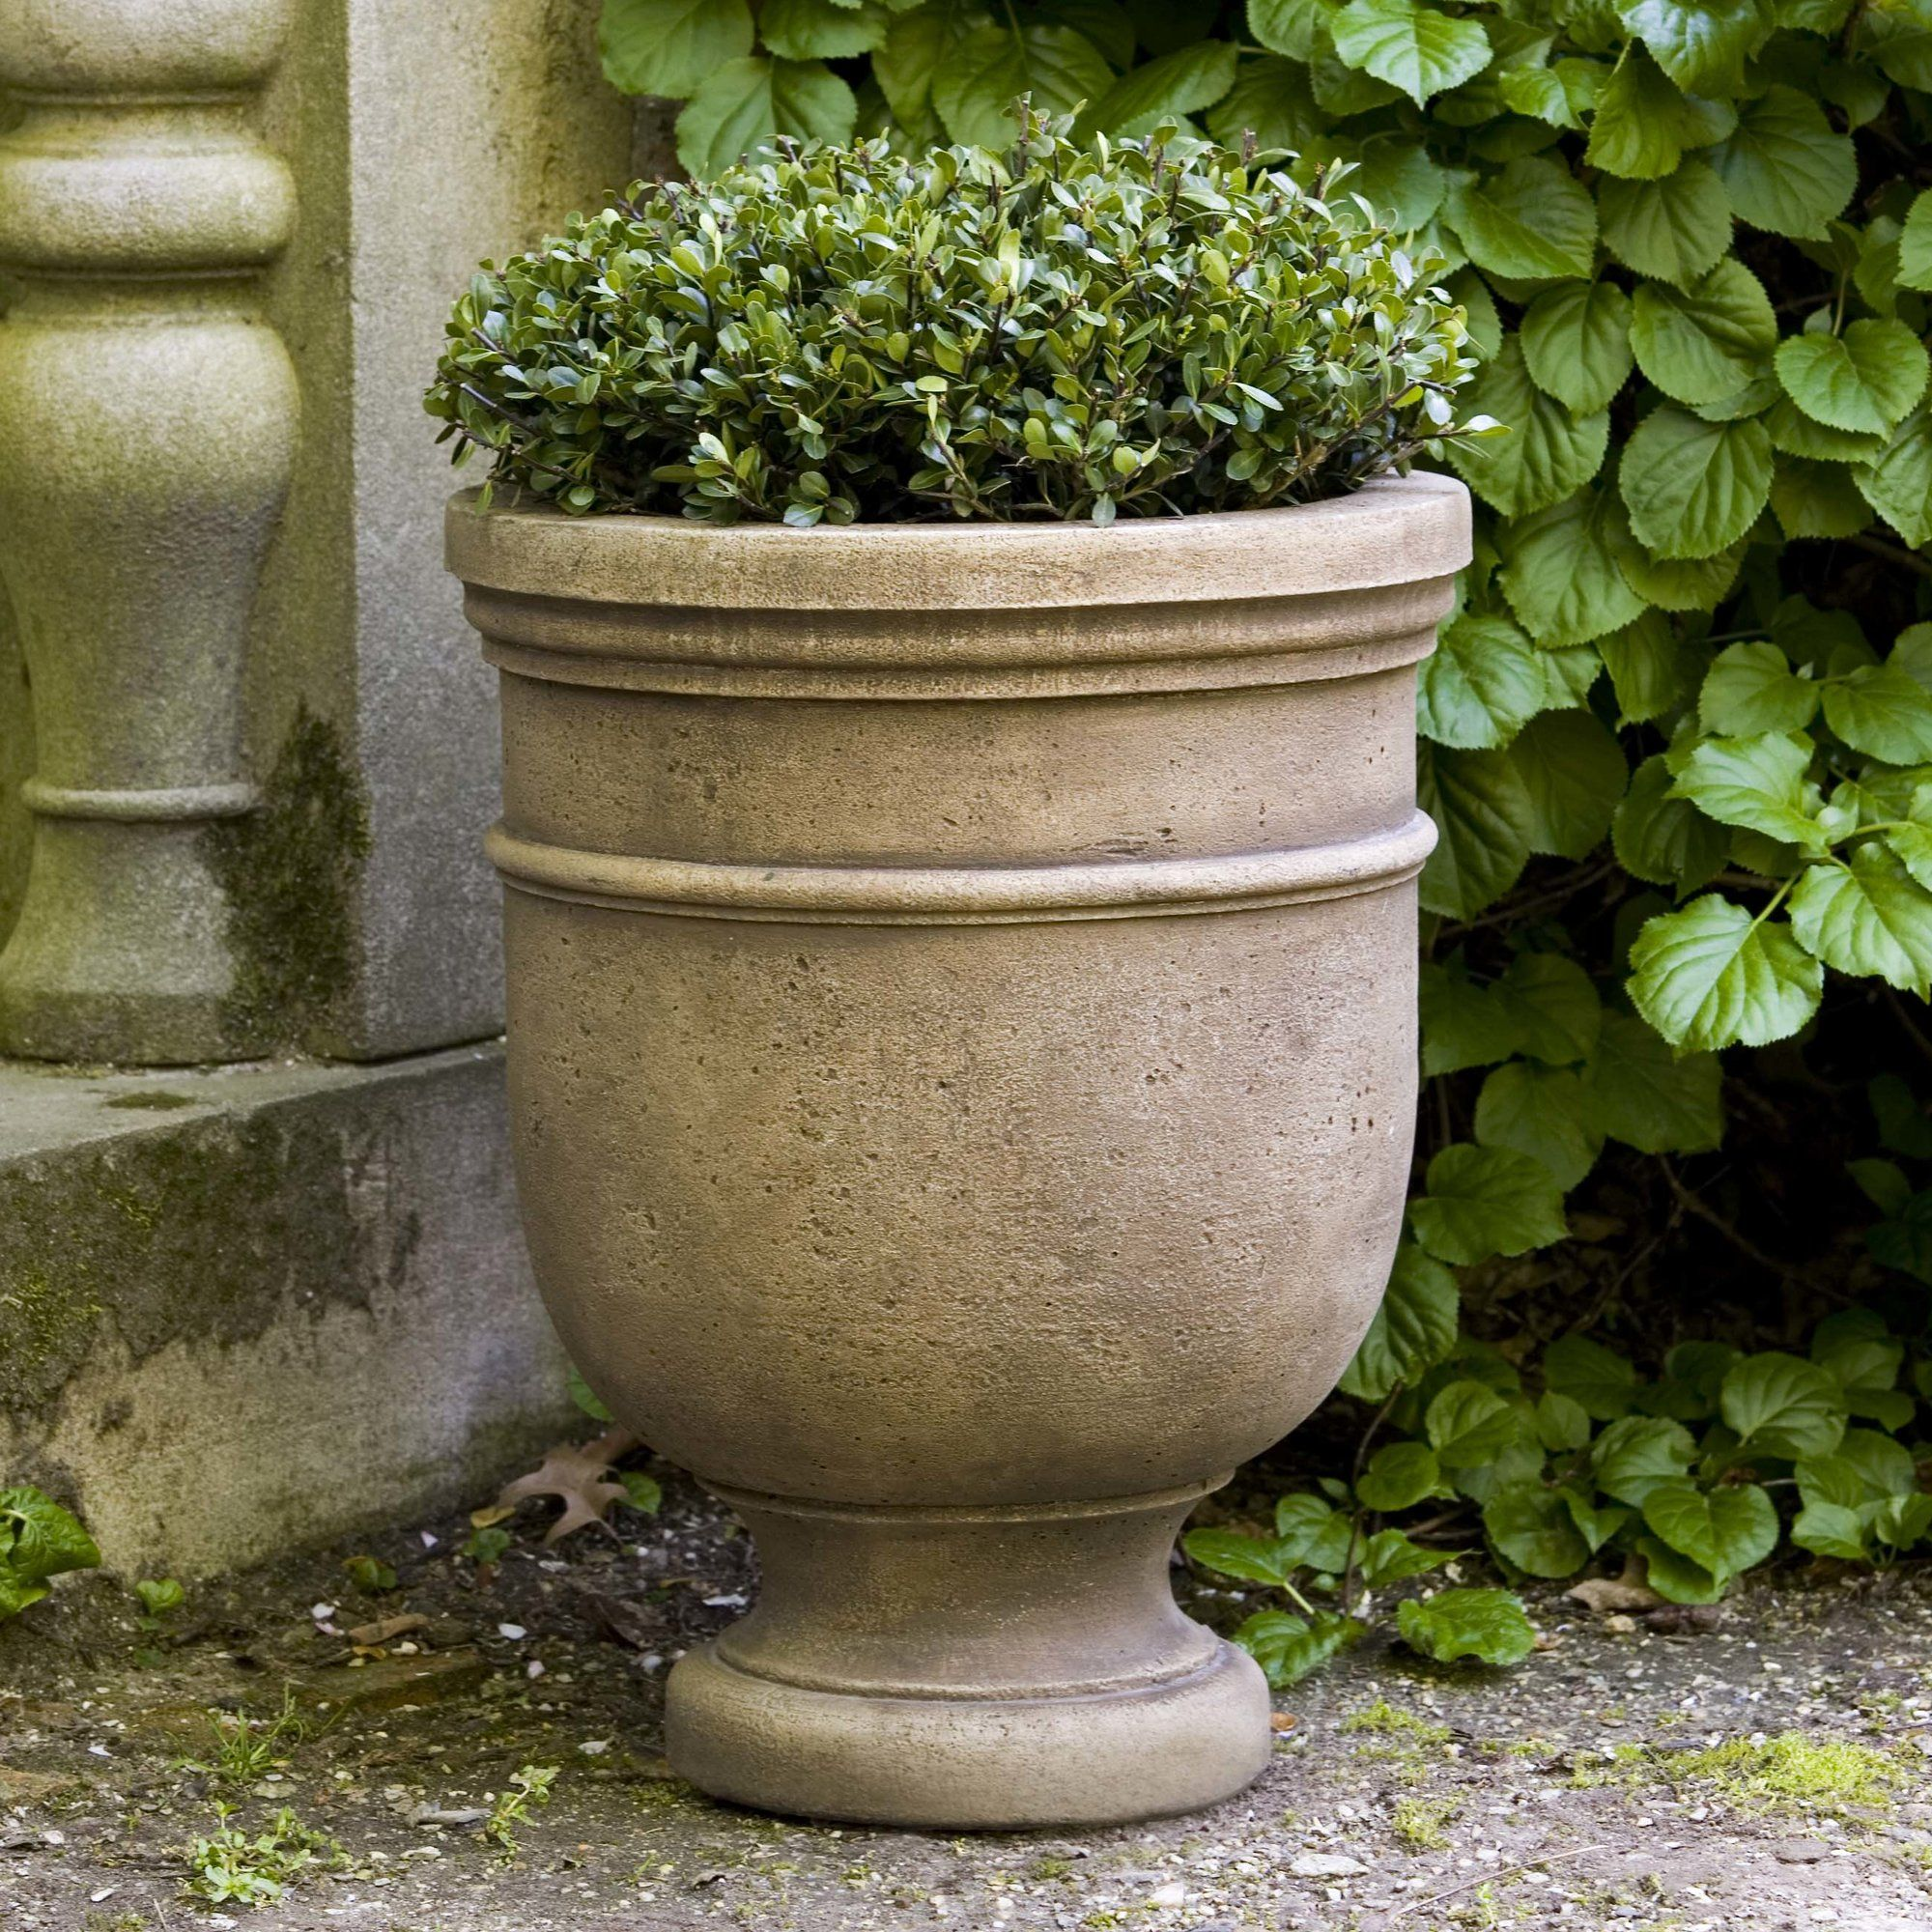 decor anduze ethan us planter ivory allen en planters no shop decorative accents and urns